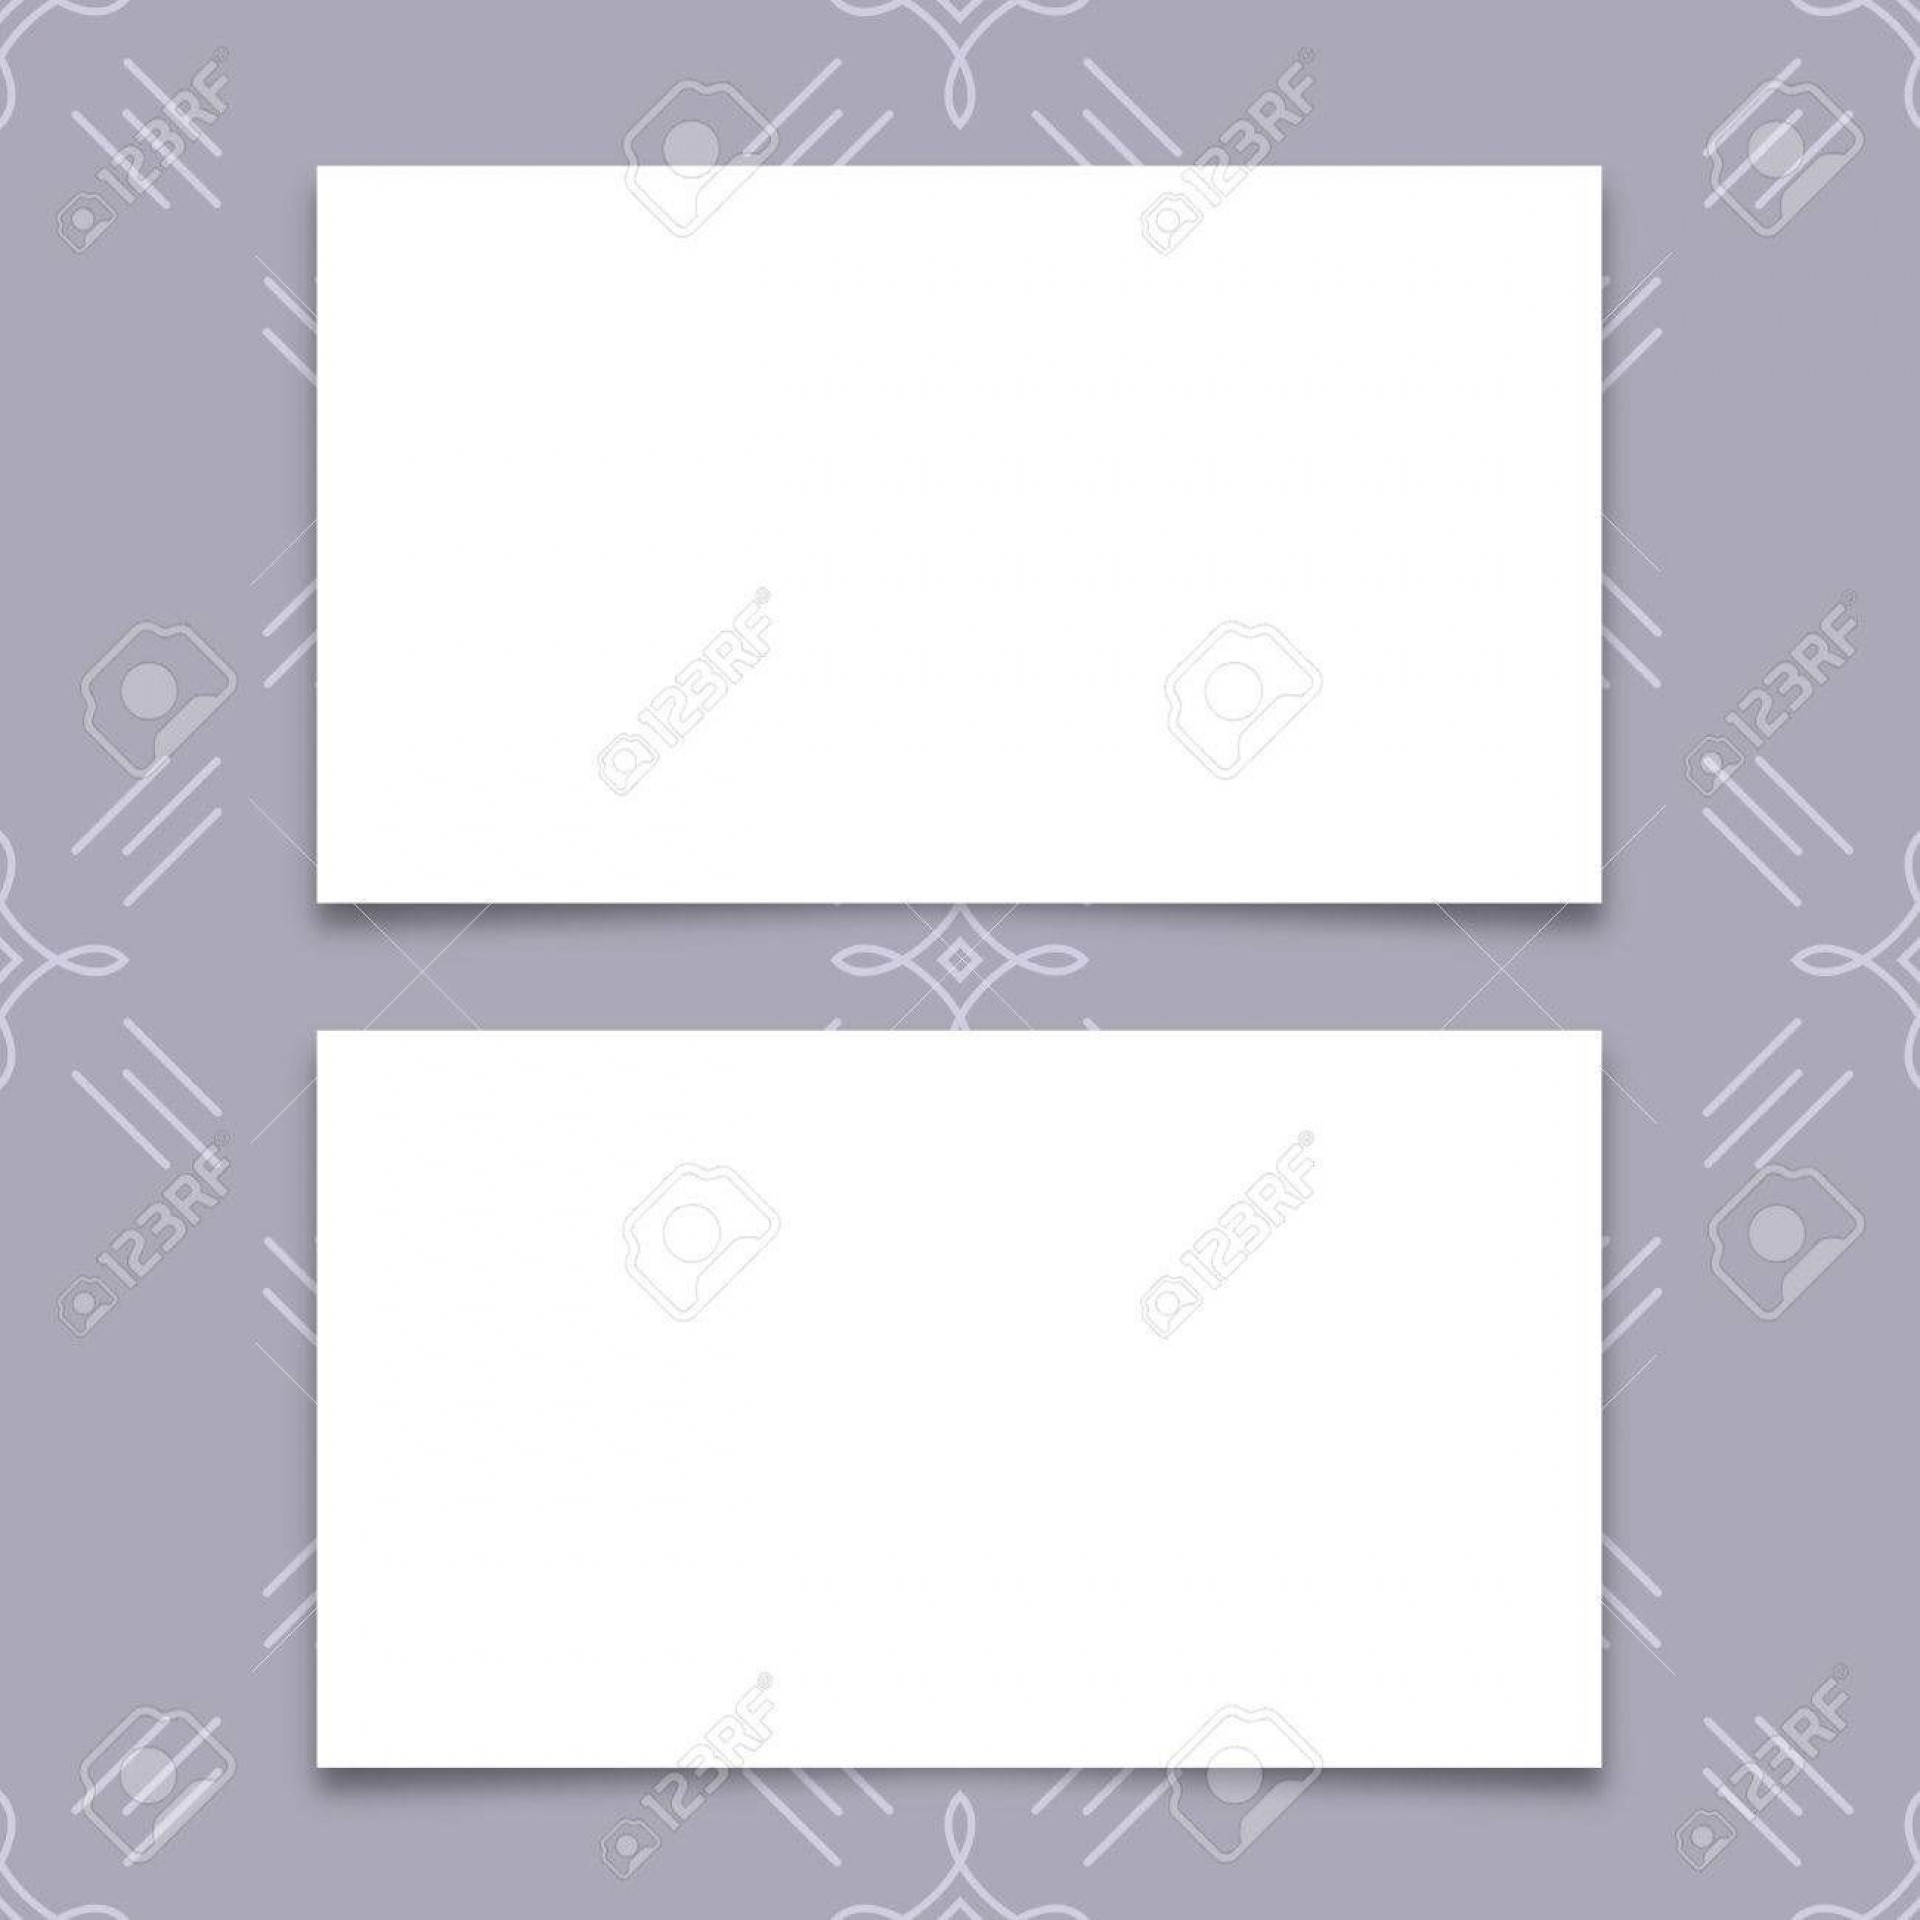 005 Fantastic Plain Busines Card Template Inspiration  White Free Download Blank Printable Word 20101920